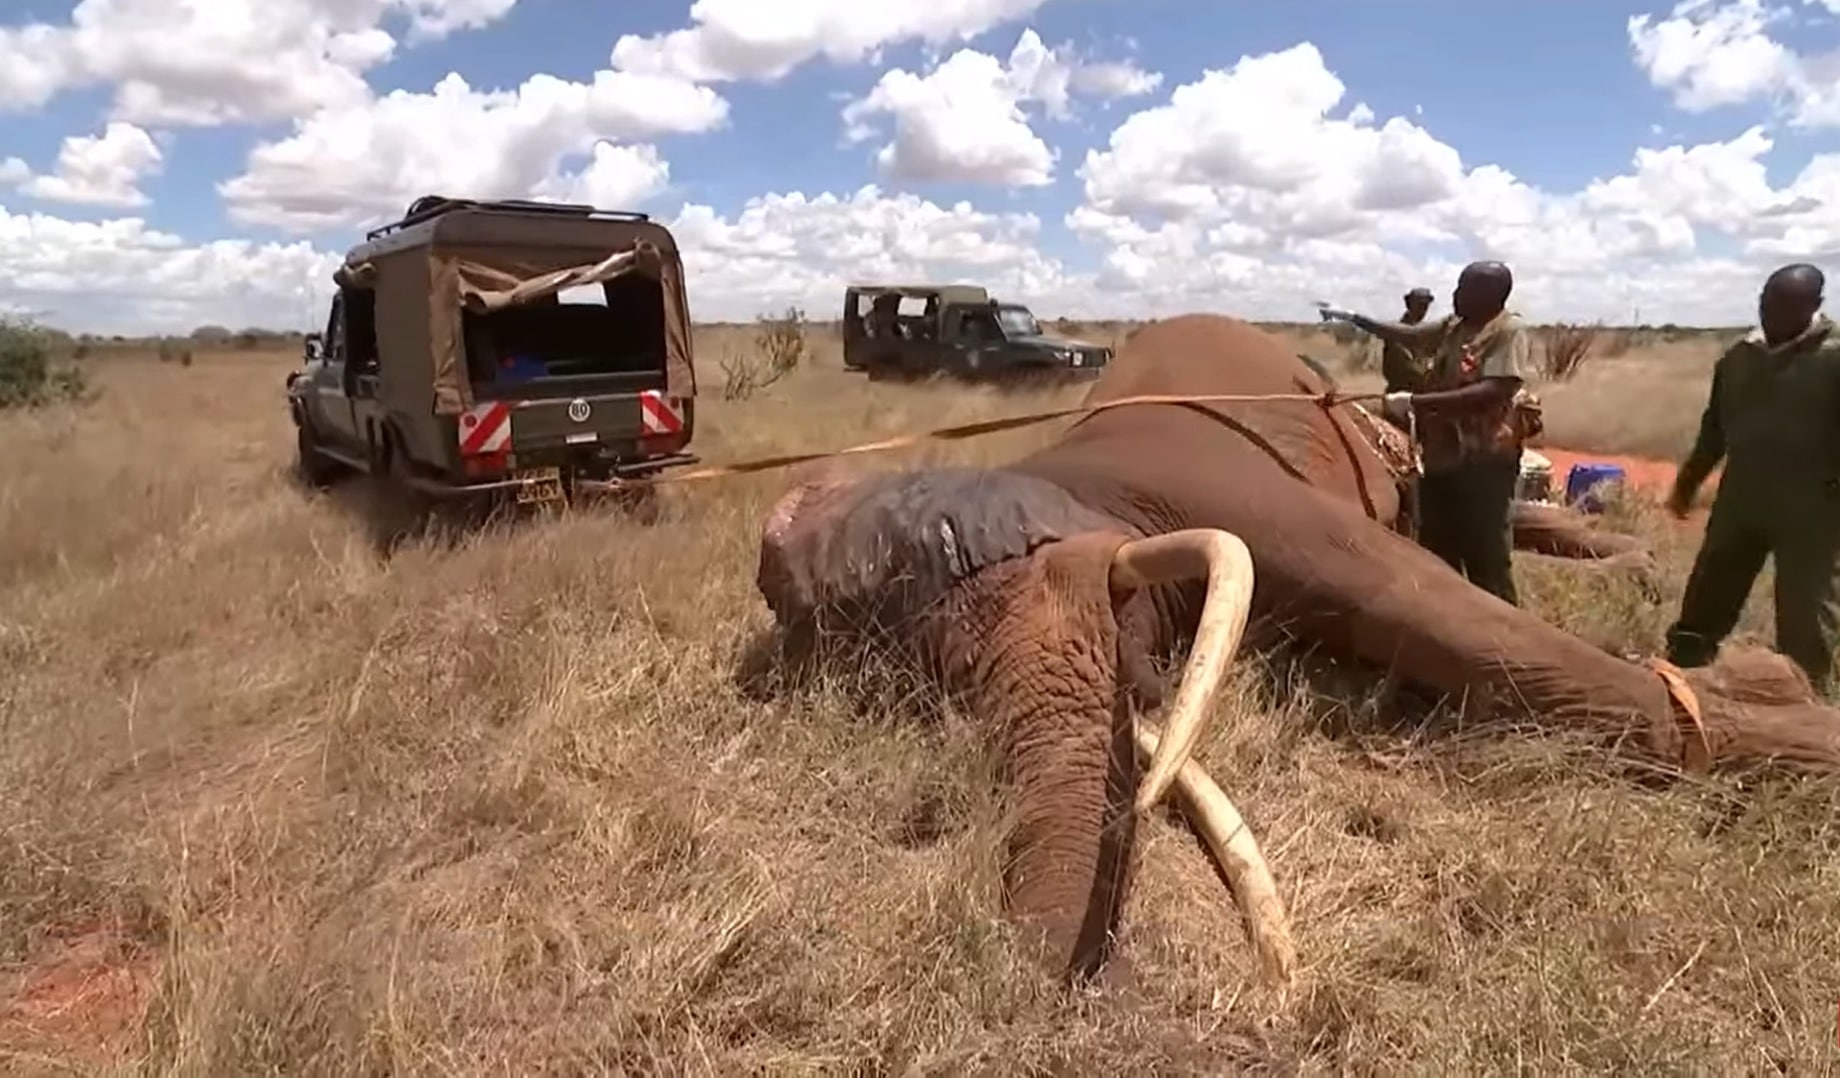 CONSEQUENCES OF POACHING